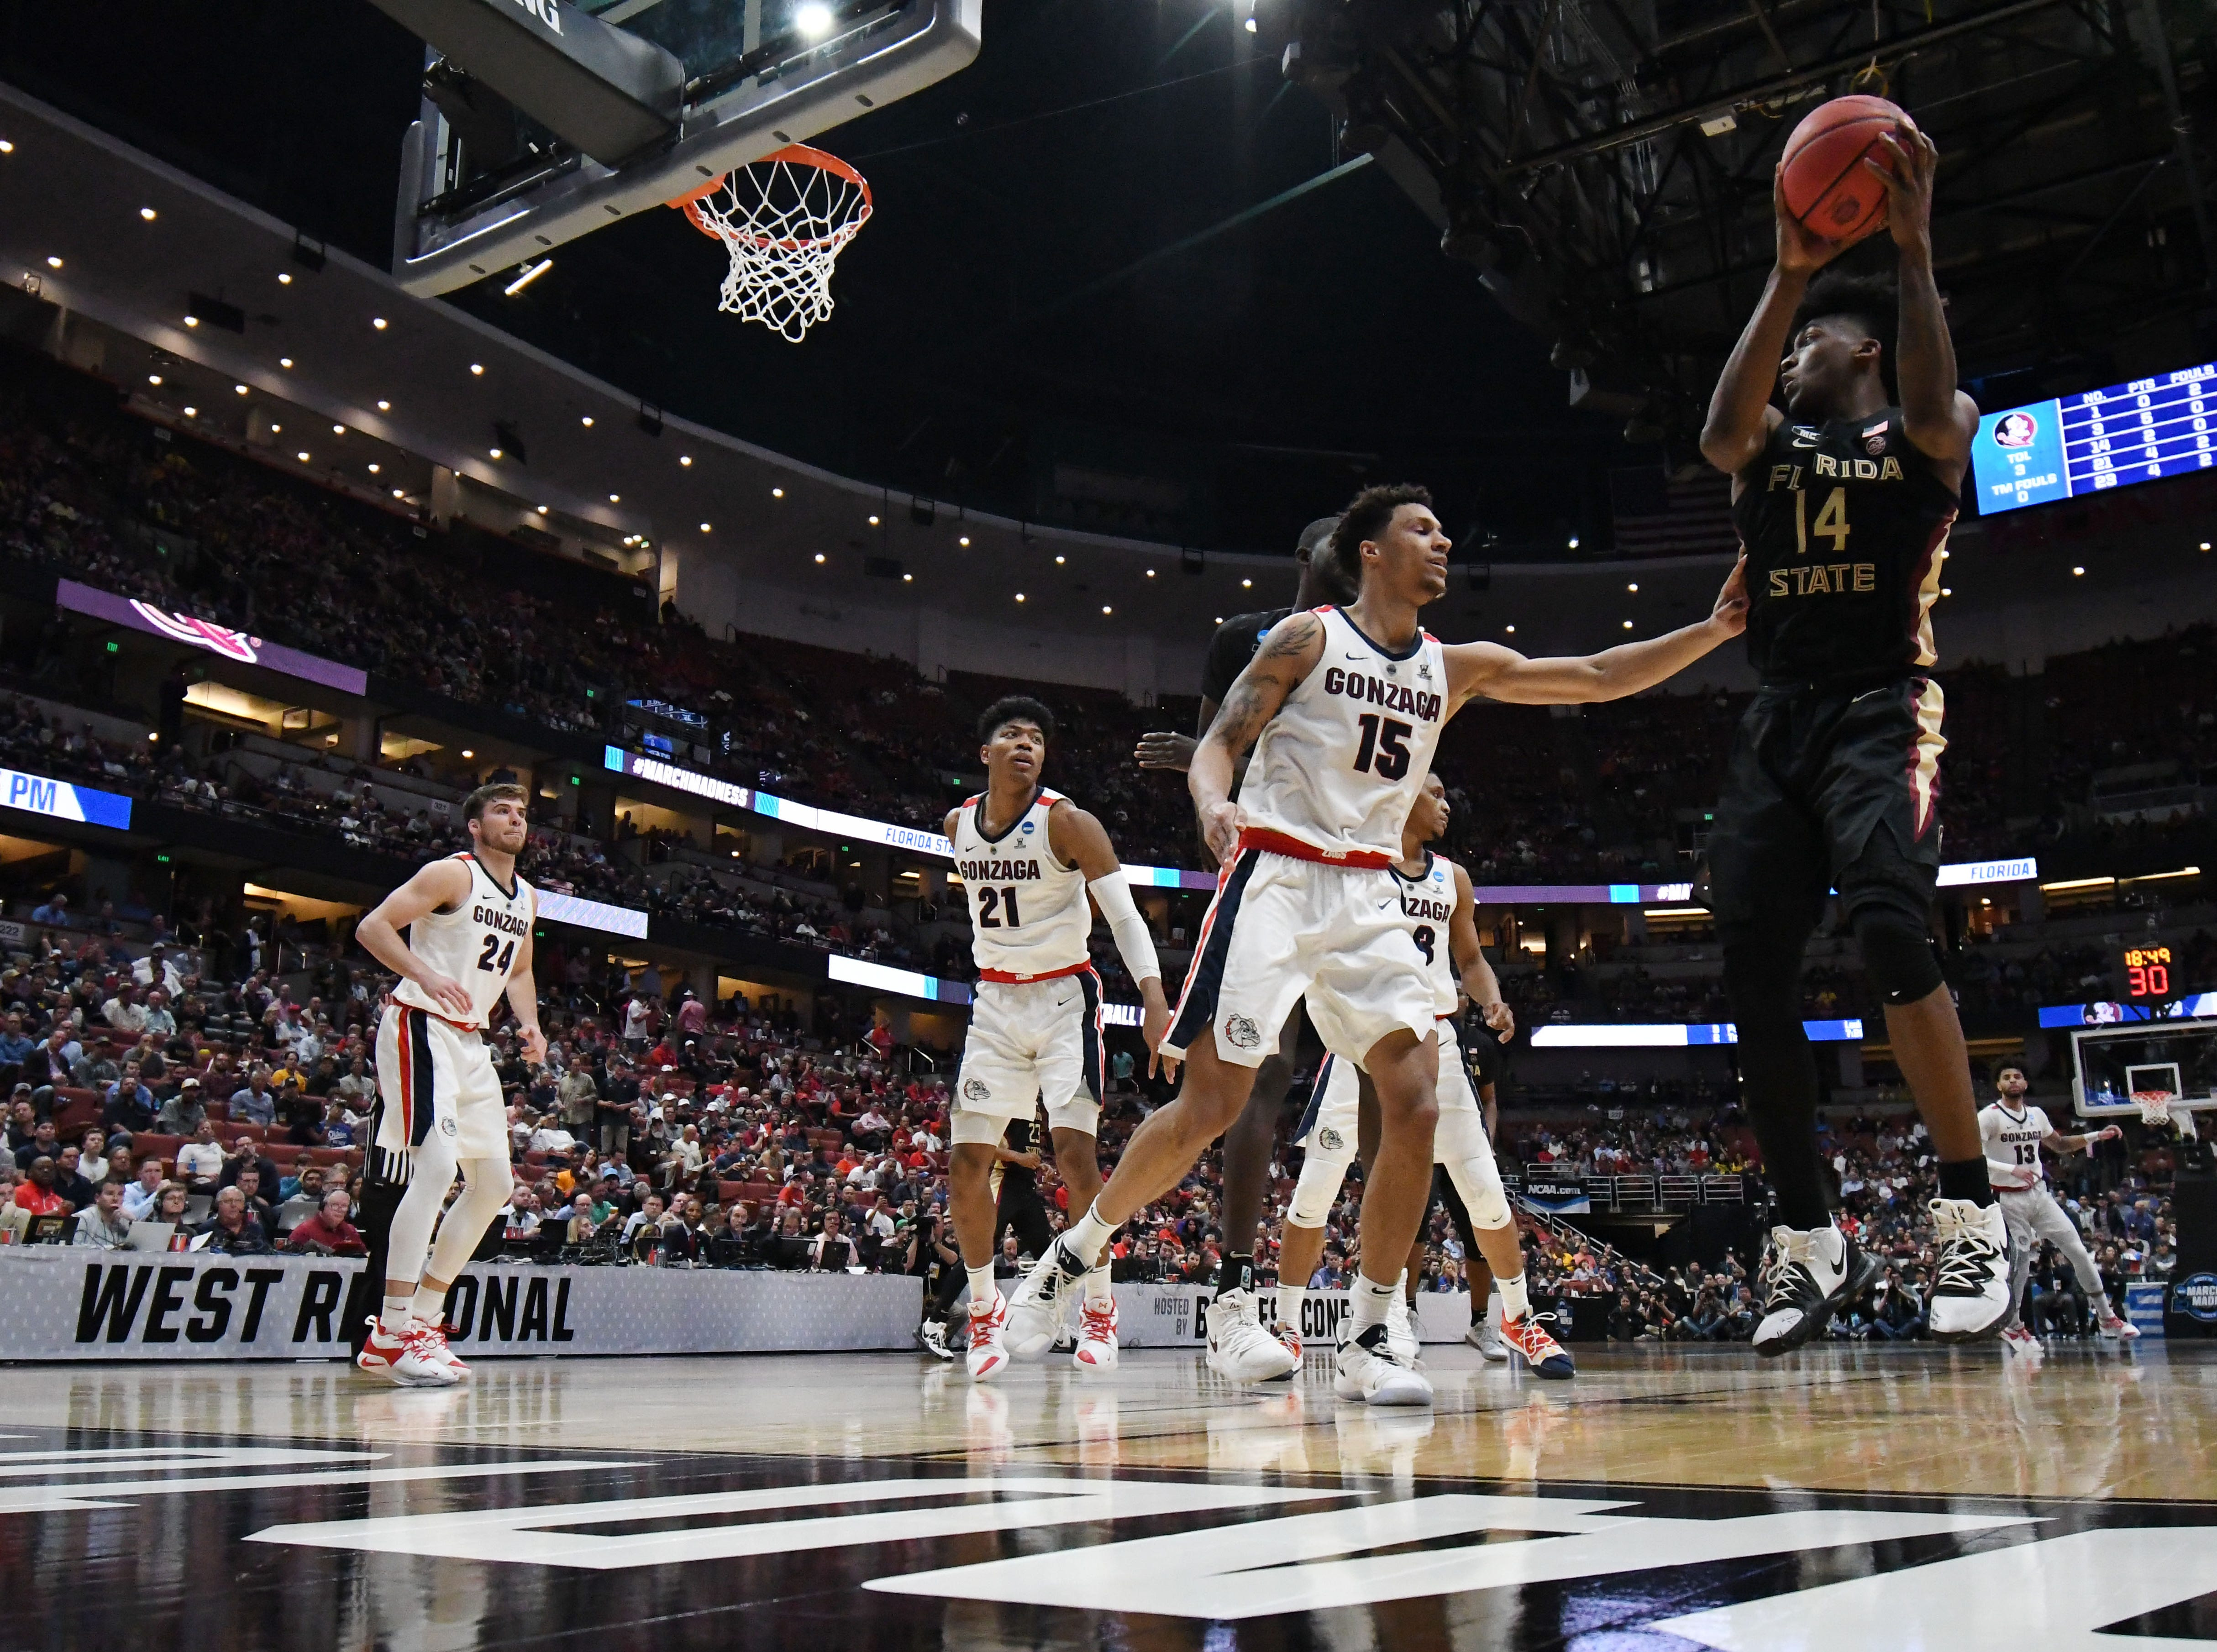 March 28, 2019; Anaheim, CA, USA; Florida State Seminoles forward Raiquan Gray (1)4 controls the ball against Gonzaga Bulldogs forward Brandon Clarke (15) during the second half in the semifinals of the west regional of the 2019 NCAA Tournament at Honda Center. Mandatory Credit: Richard Mackson-USA TODAY Sports